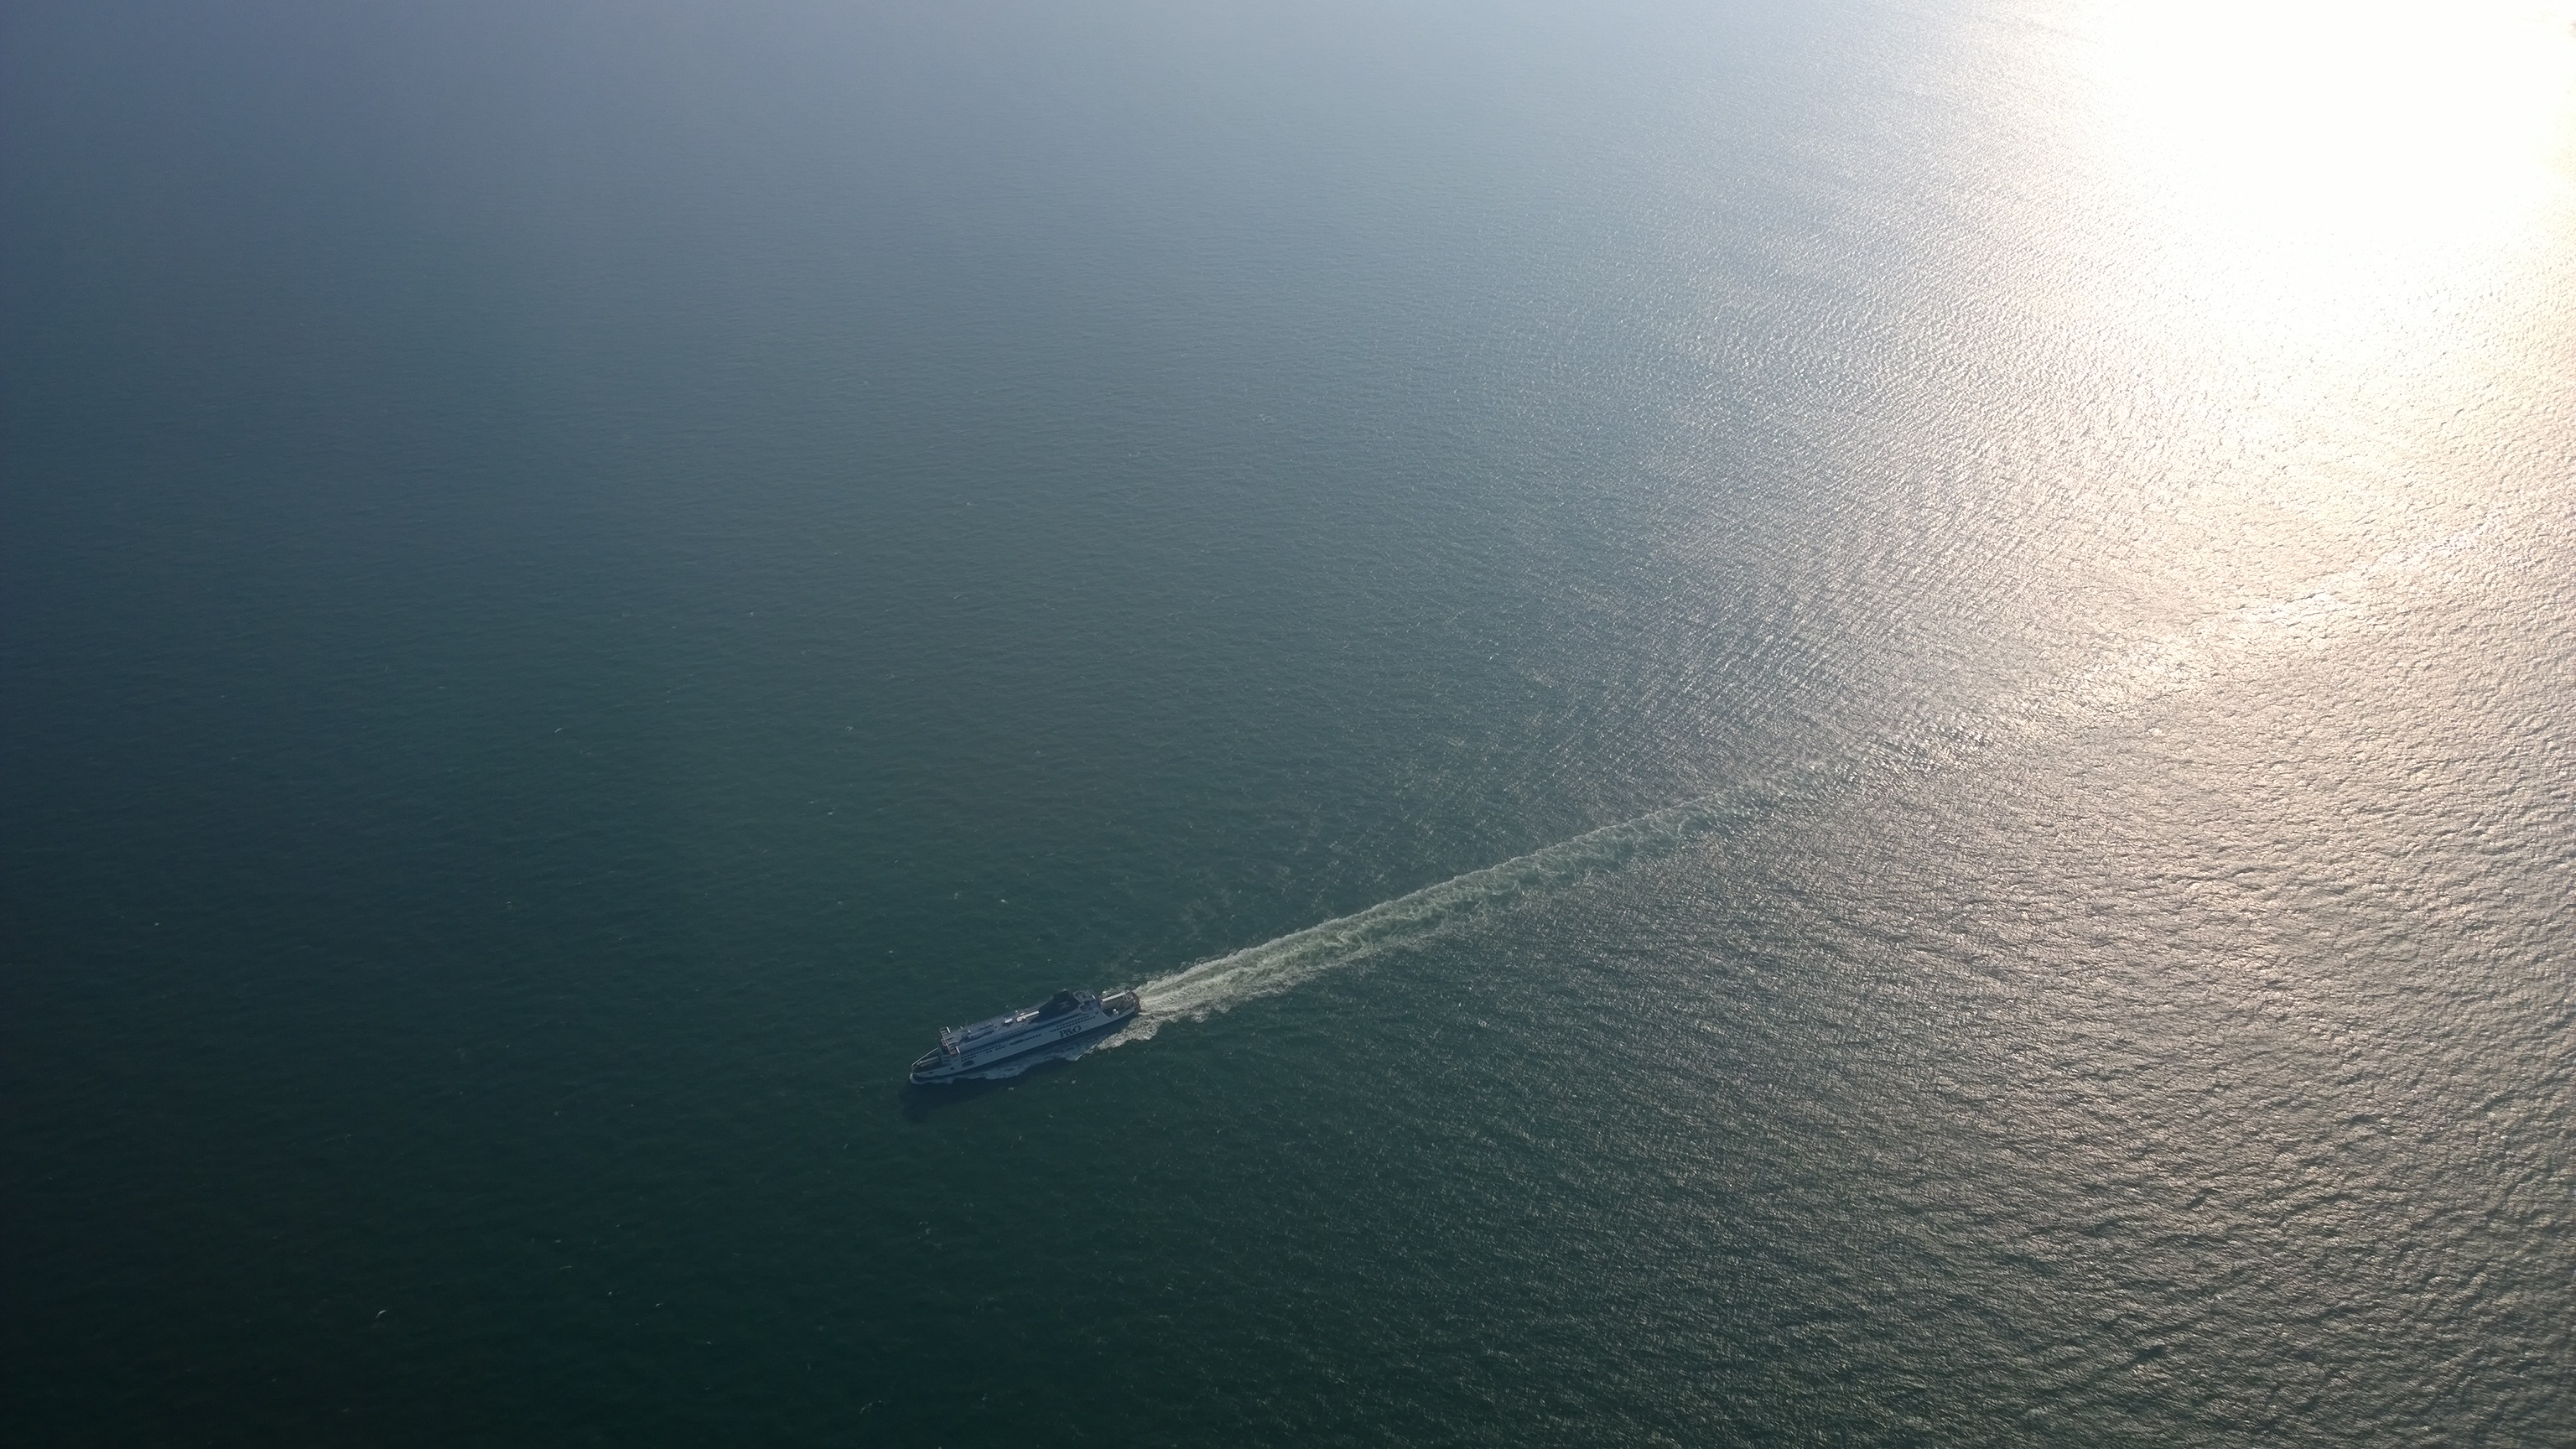 P&O Ferry from above